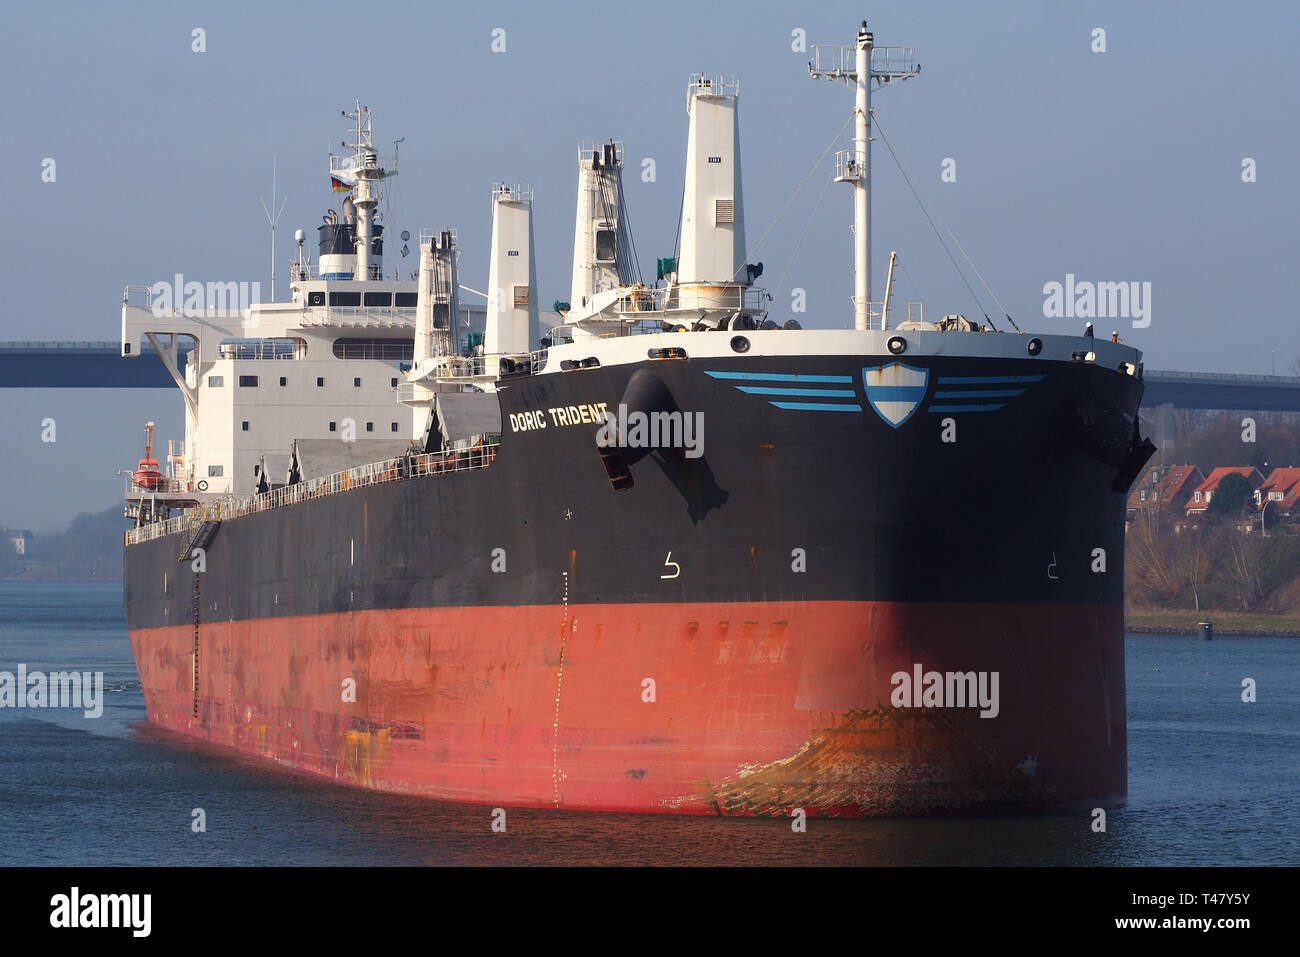 Bulk Carrier Doric Trident entering the Holtenau locks - Stock Image